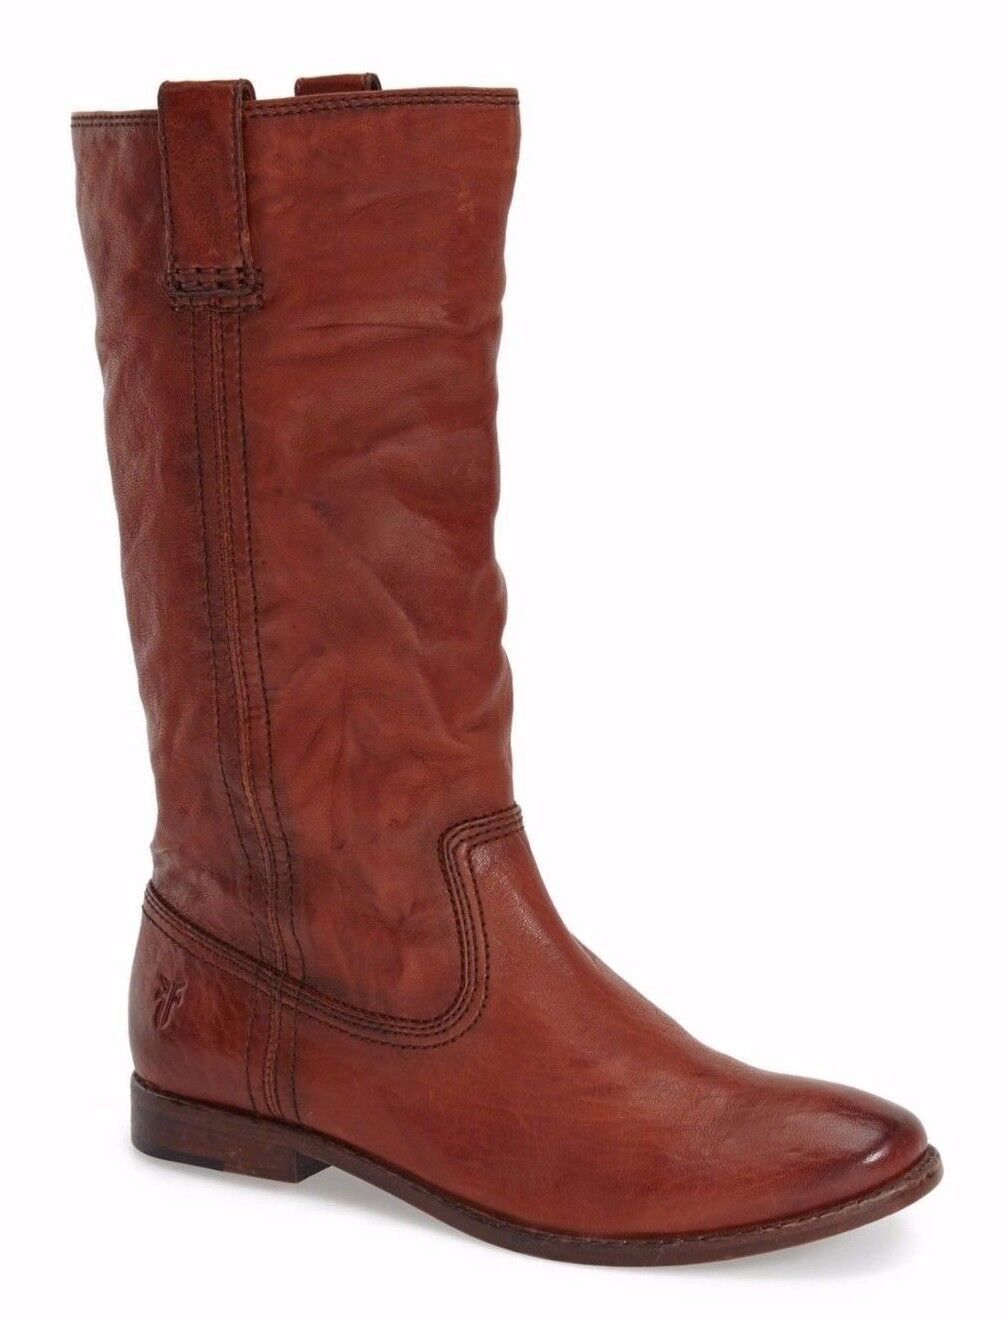 348 Frye Anna Mid Women's Boot Leather Pull On-ASV Slouch Cognac Brown Size 9